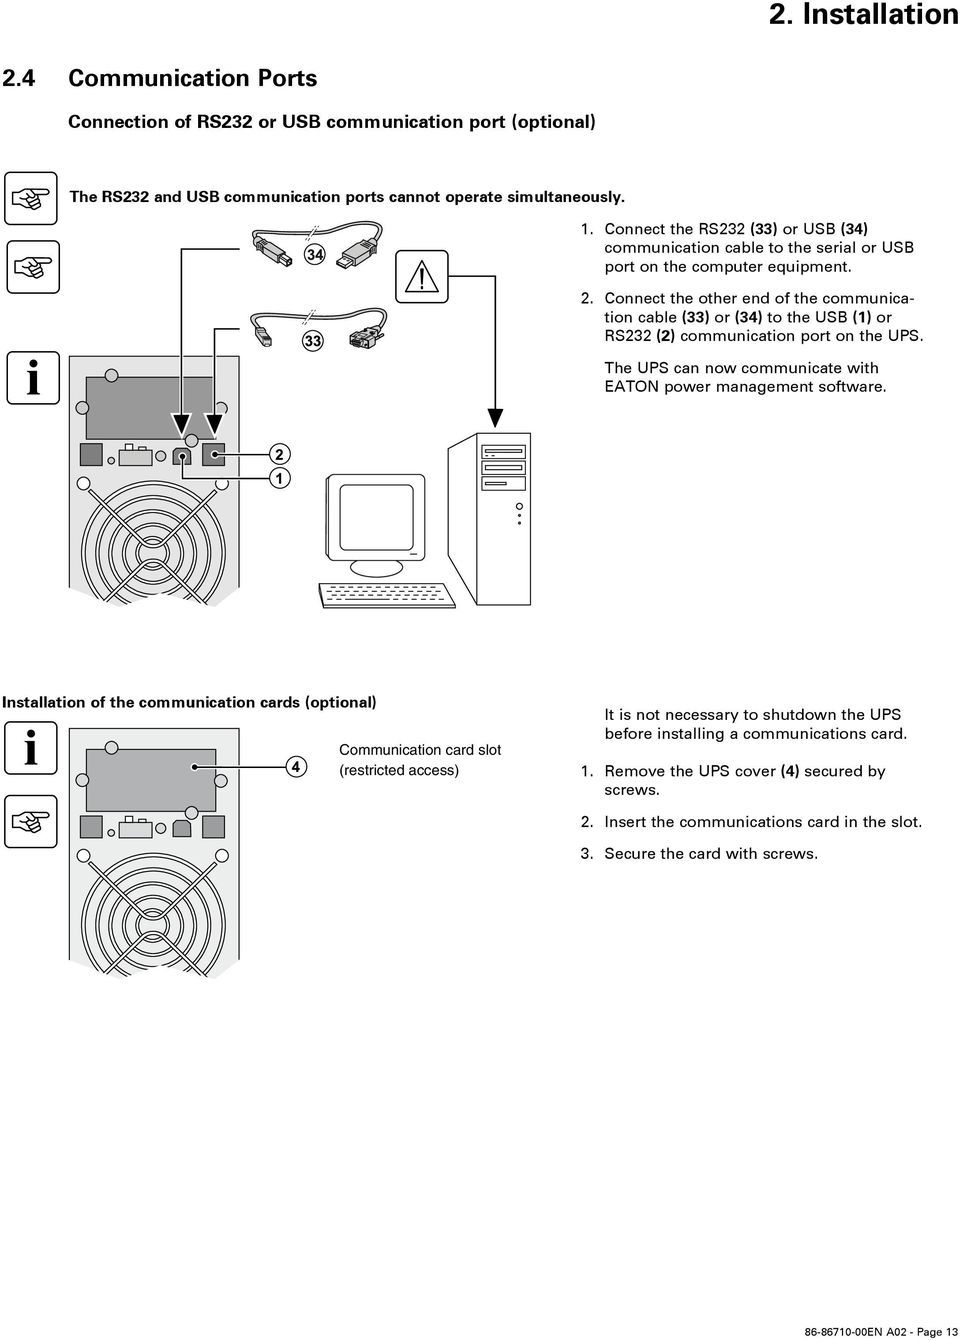 Connect the other end of the communication cable (33) or (34) to the USB (1) or RS232 (2) communication port on the UPS. The UPS can no communicate ith EATON poer management softare.